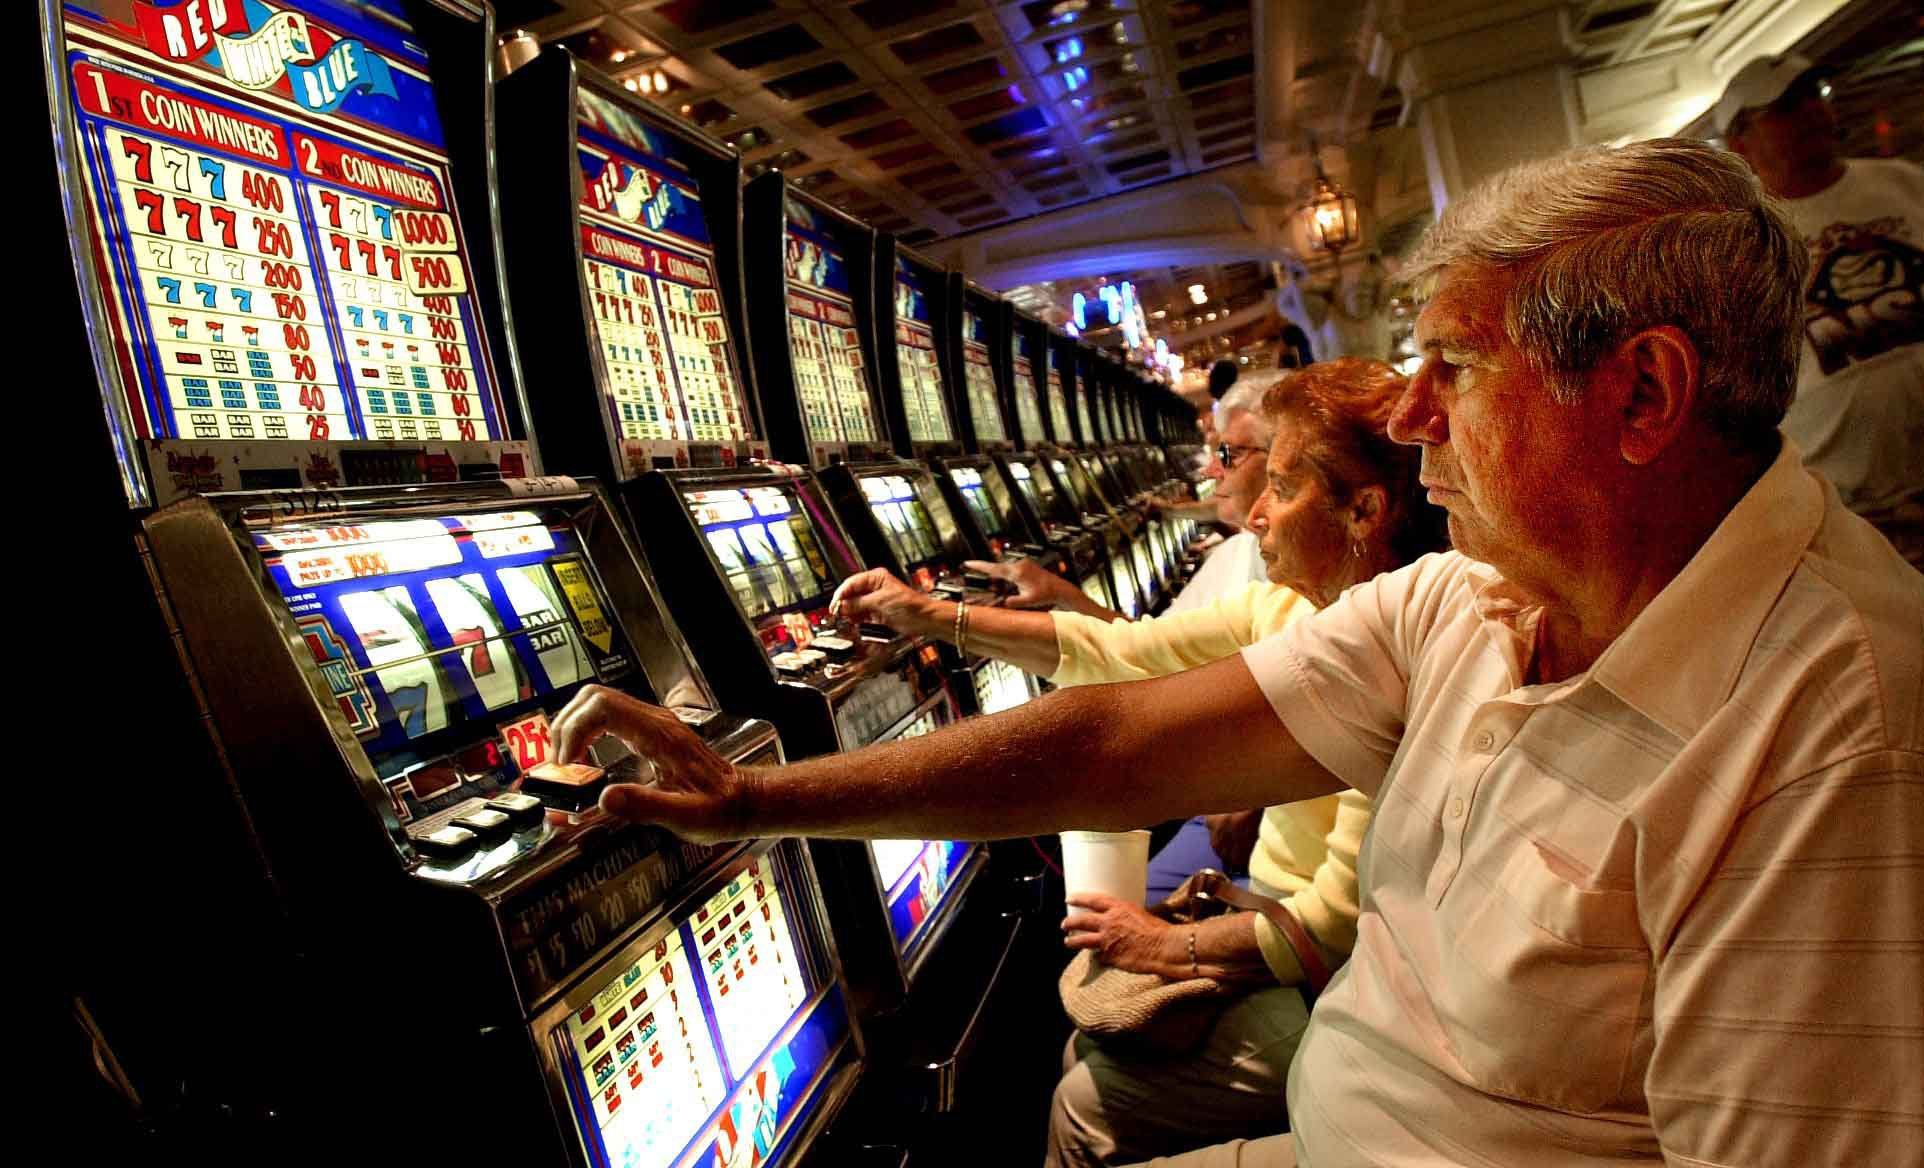 Gambling problems fruit machines new casino in china